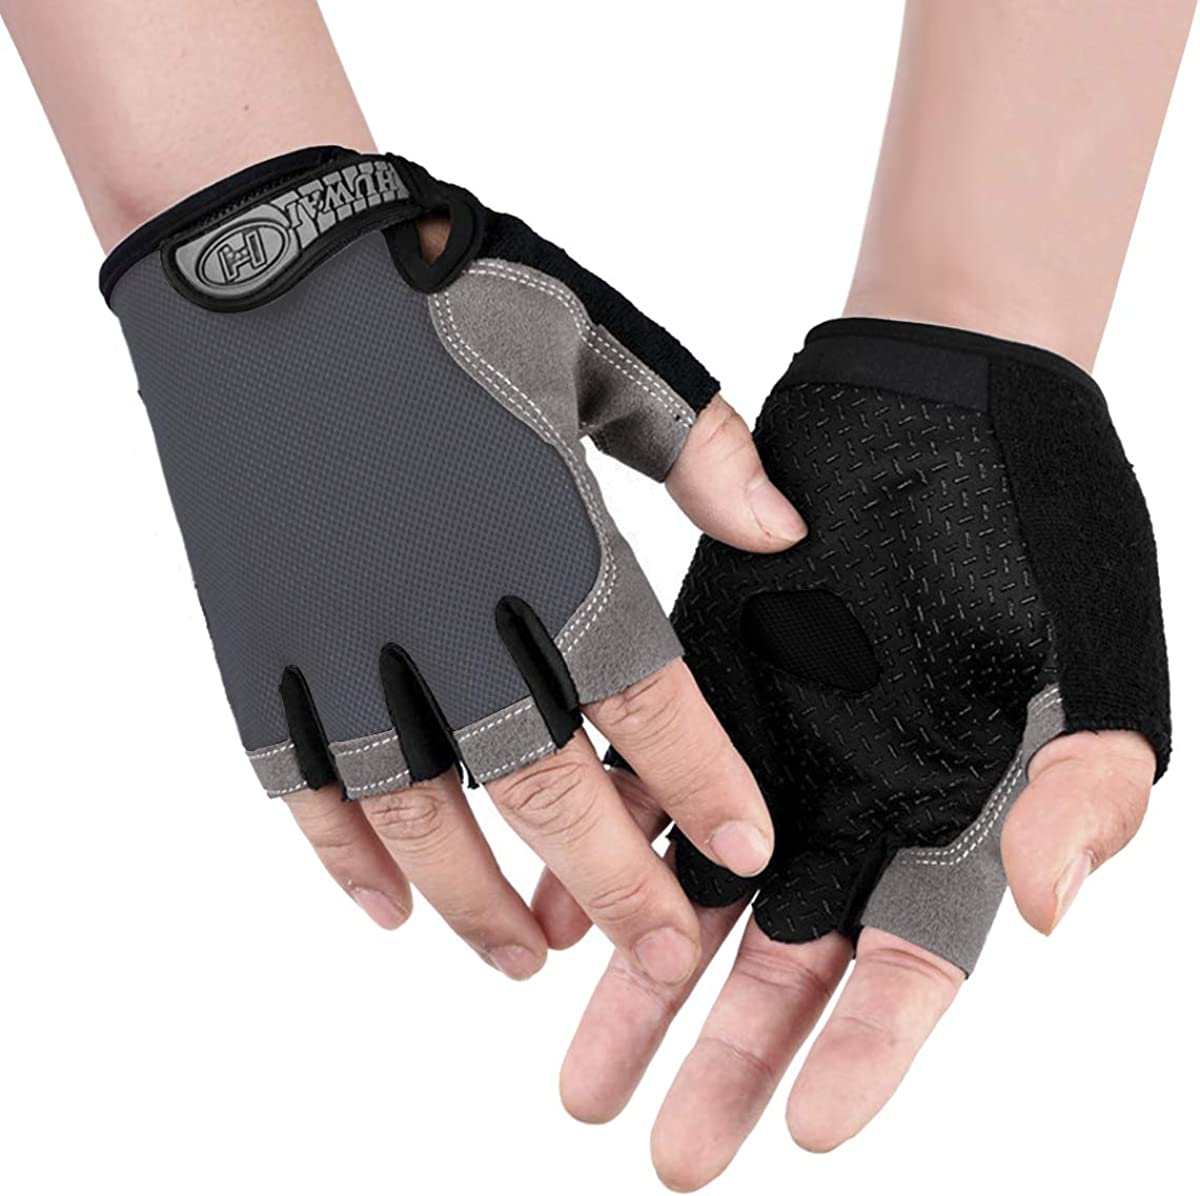 4 Colors Pull-up Outdoor LeerKing Fingless Sport Gloves Unisex Man Women Half Finger Cycling Gloves for Bike Size XS to XL Weightlighting Gym